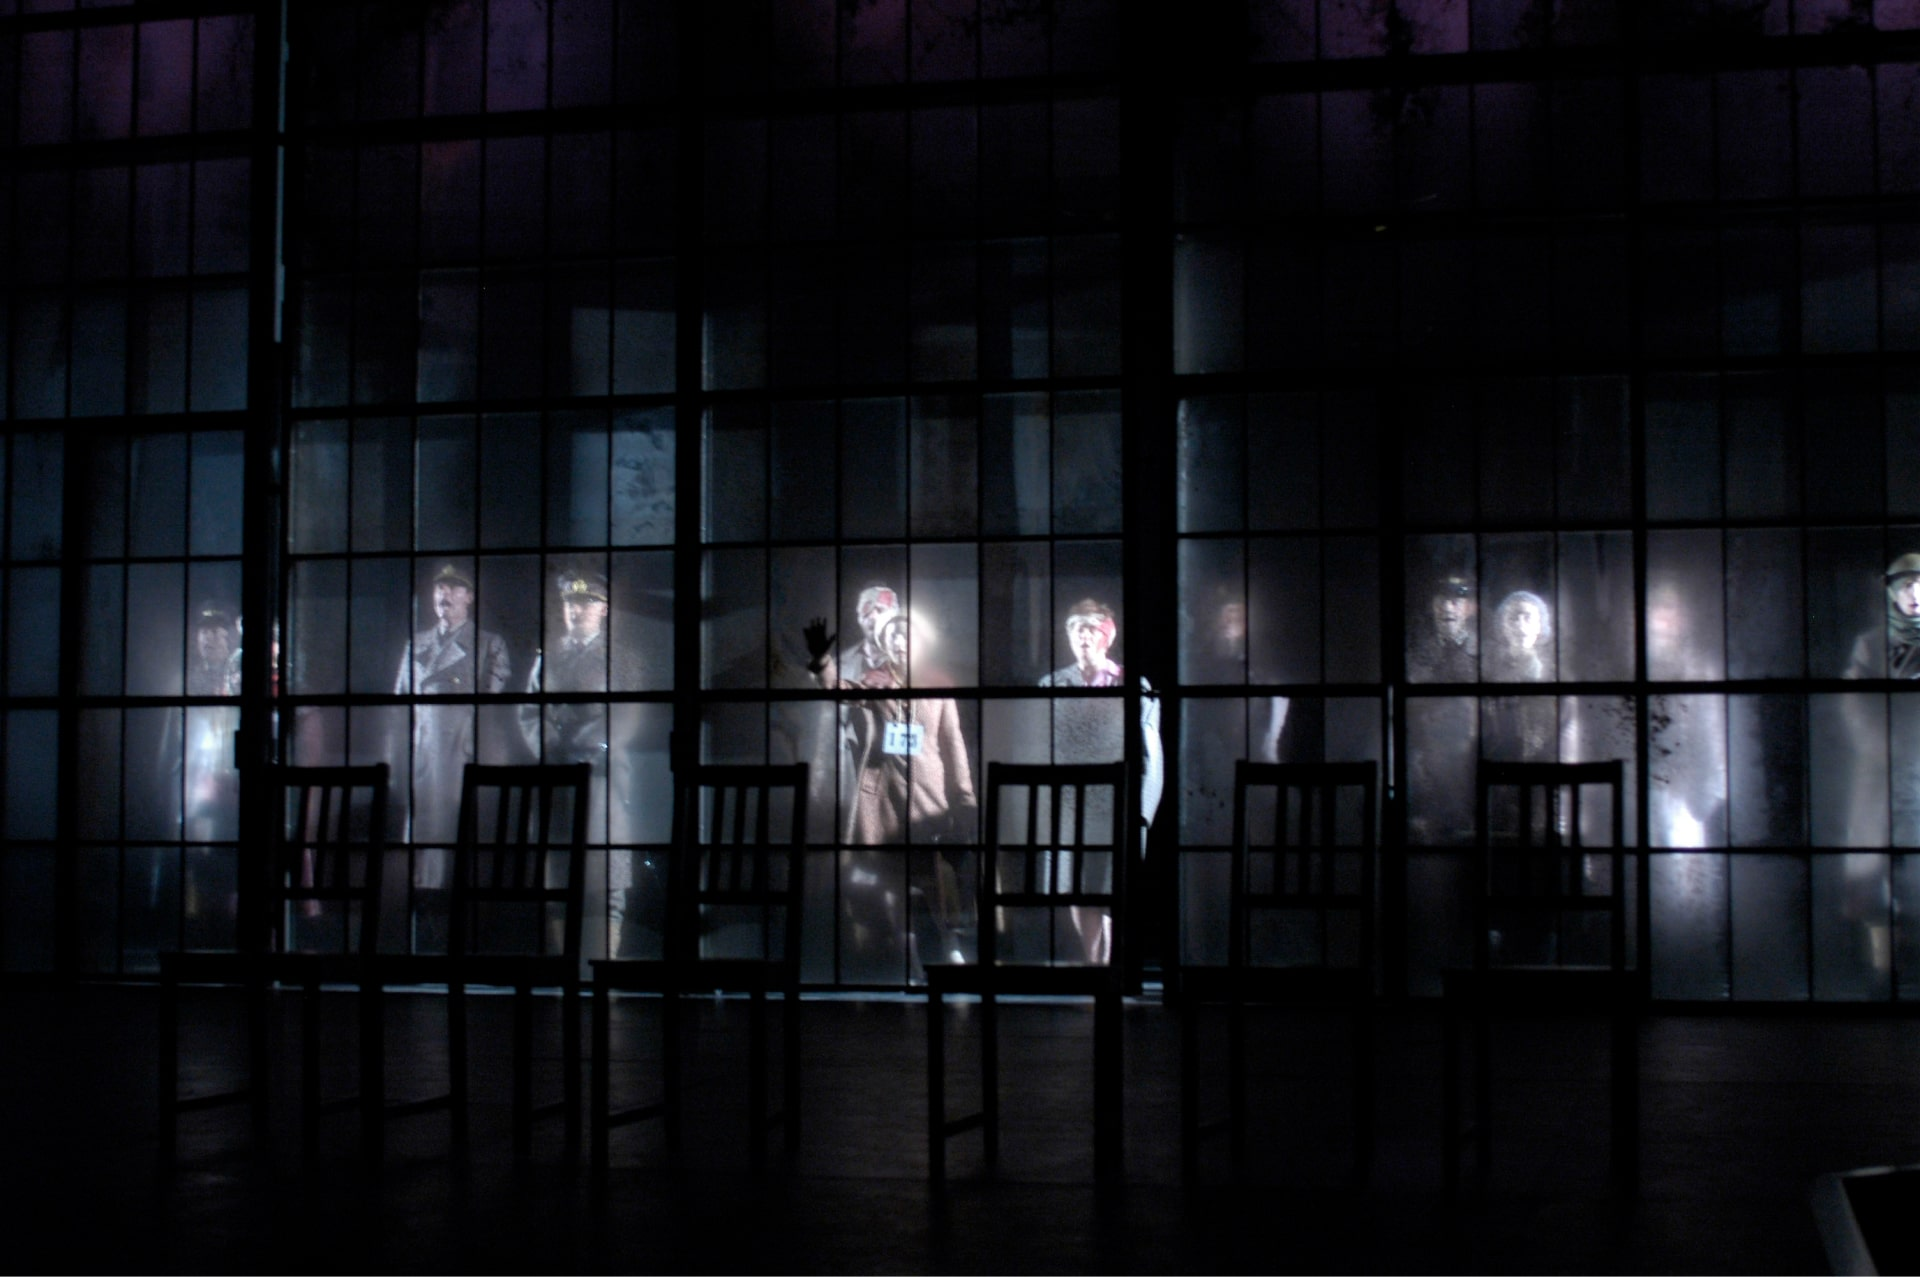 Ghostly figures are lit behind translucent glass wall of windows behind silhouetted empty chairs.